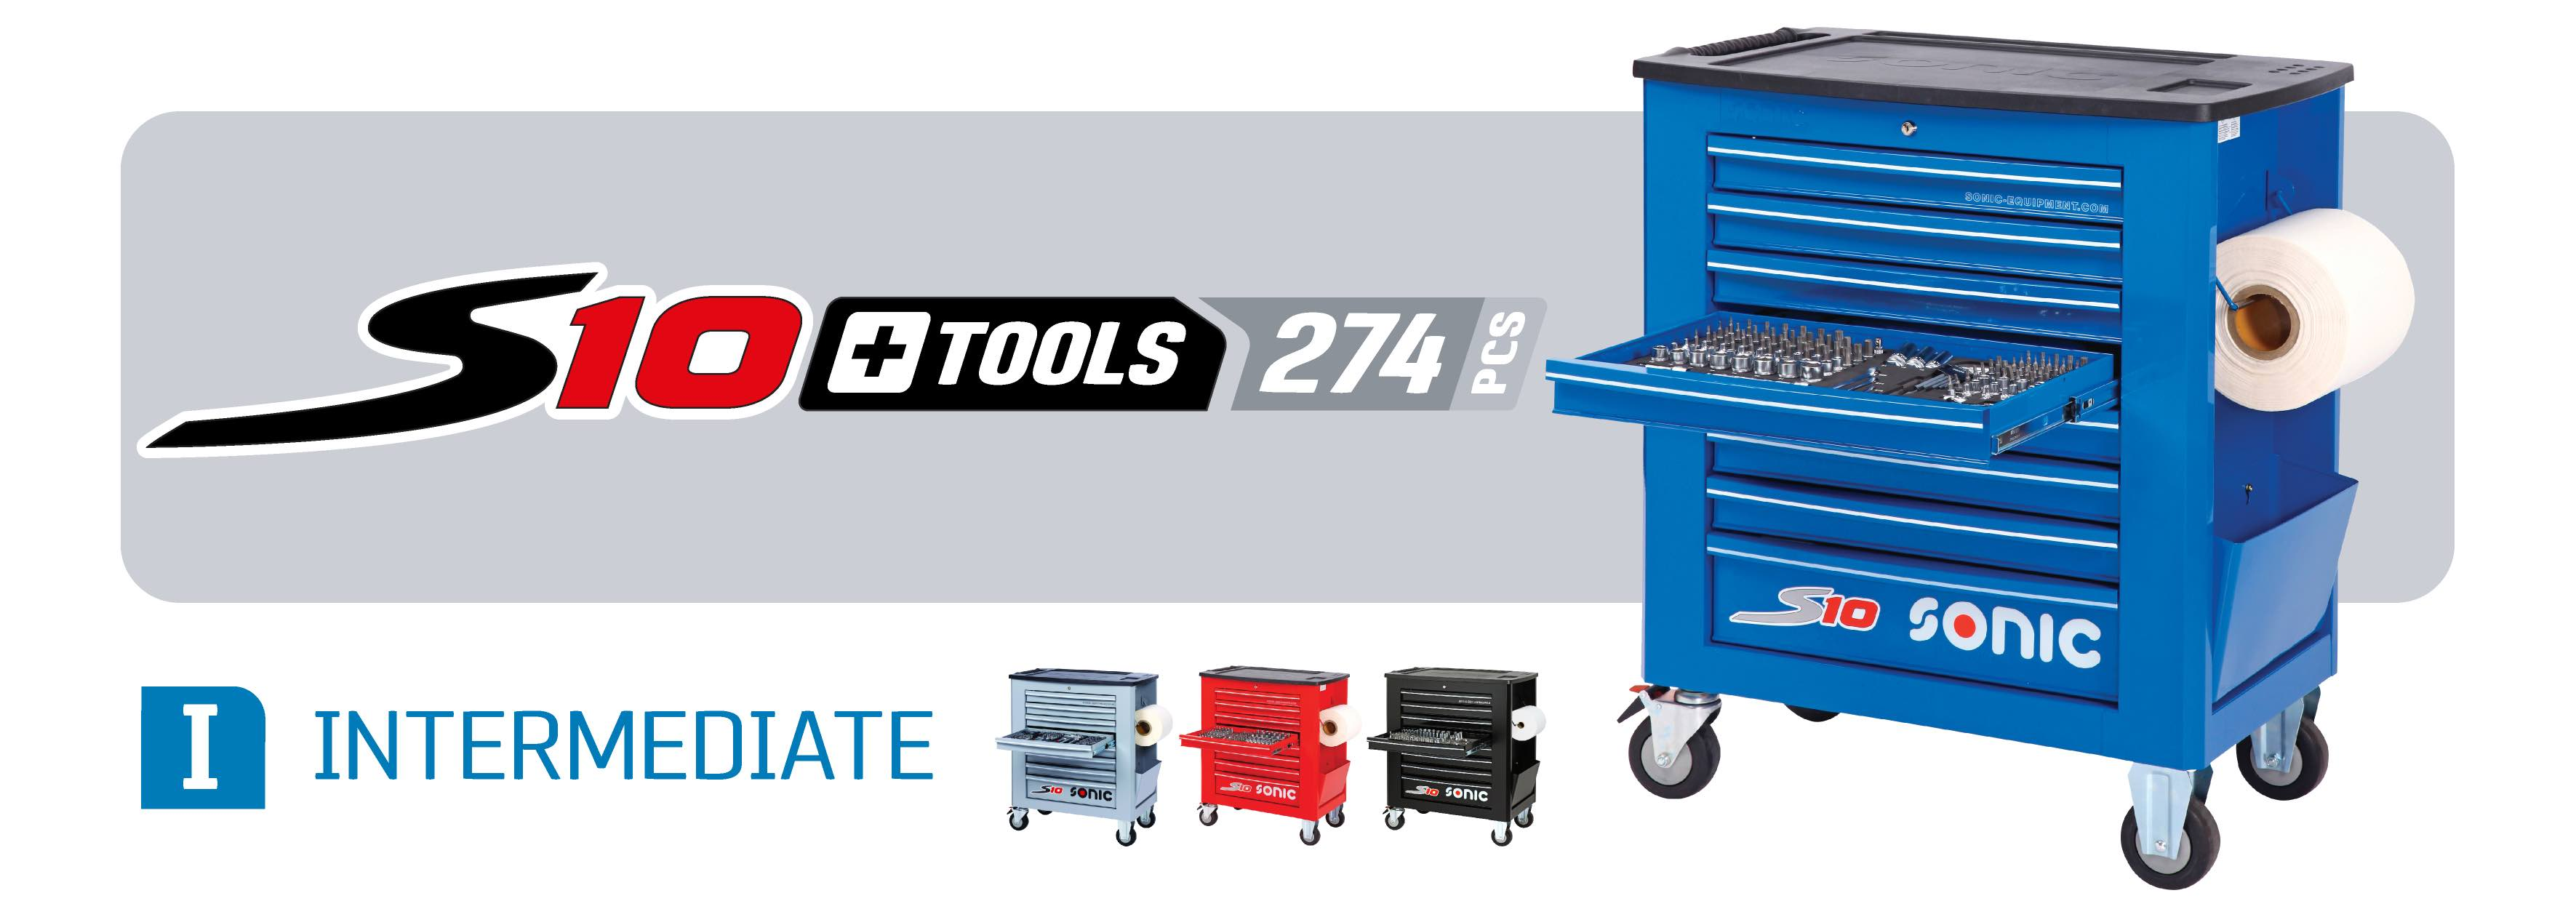 s10 toolbox with tools 274 pieces